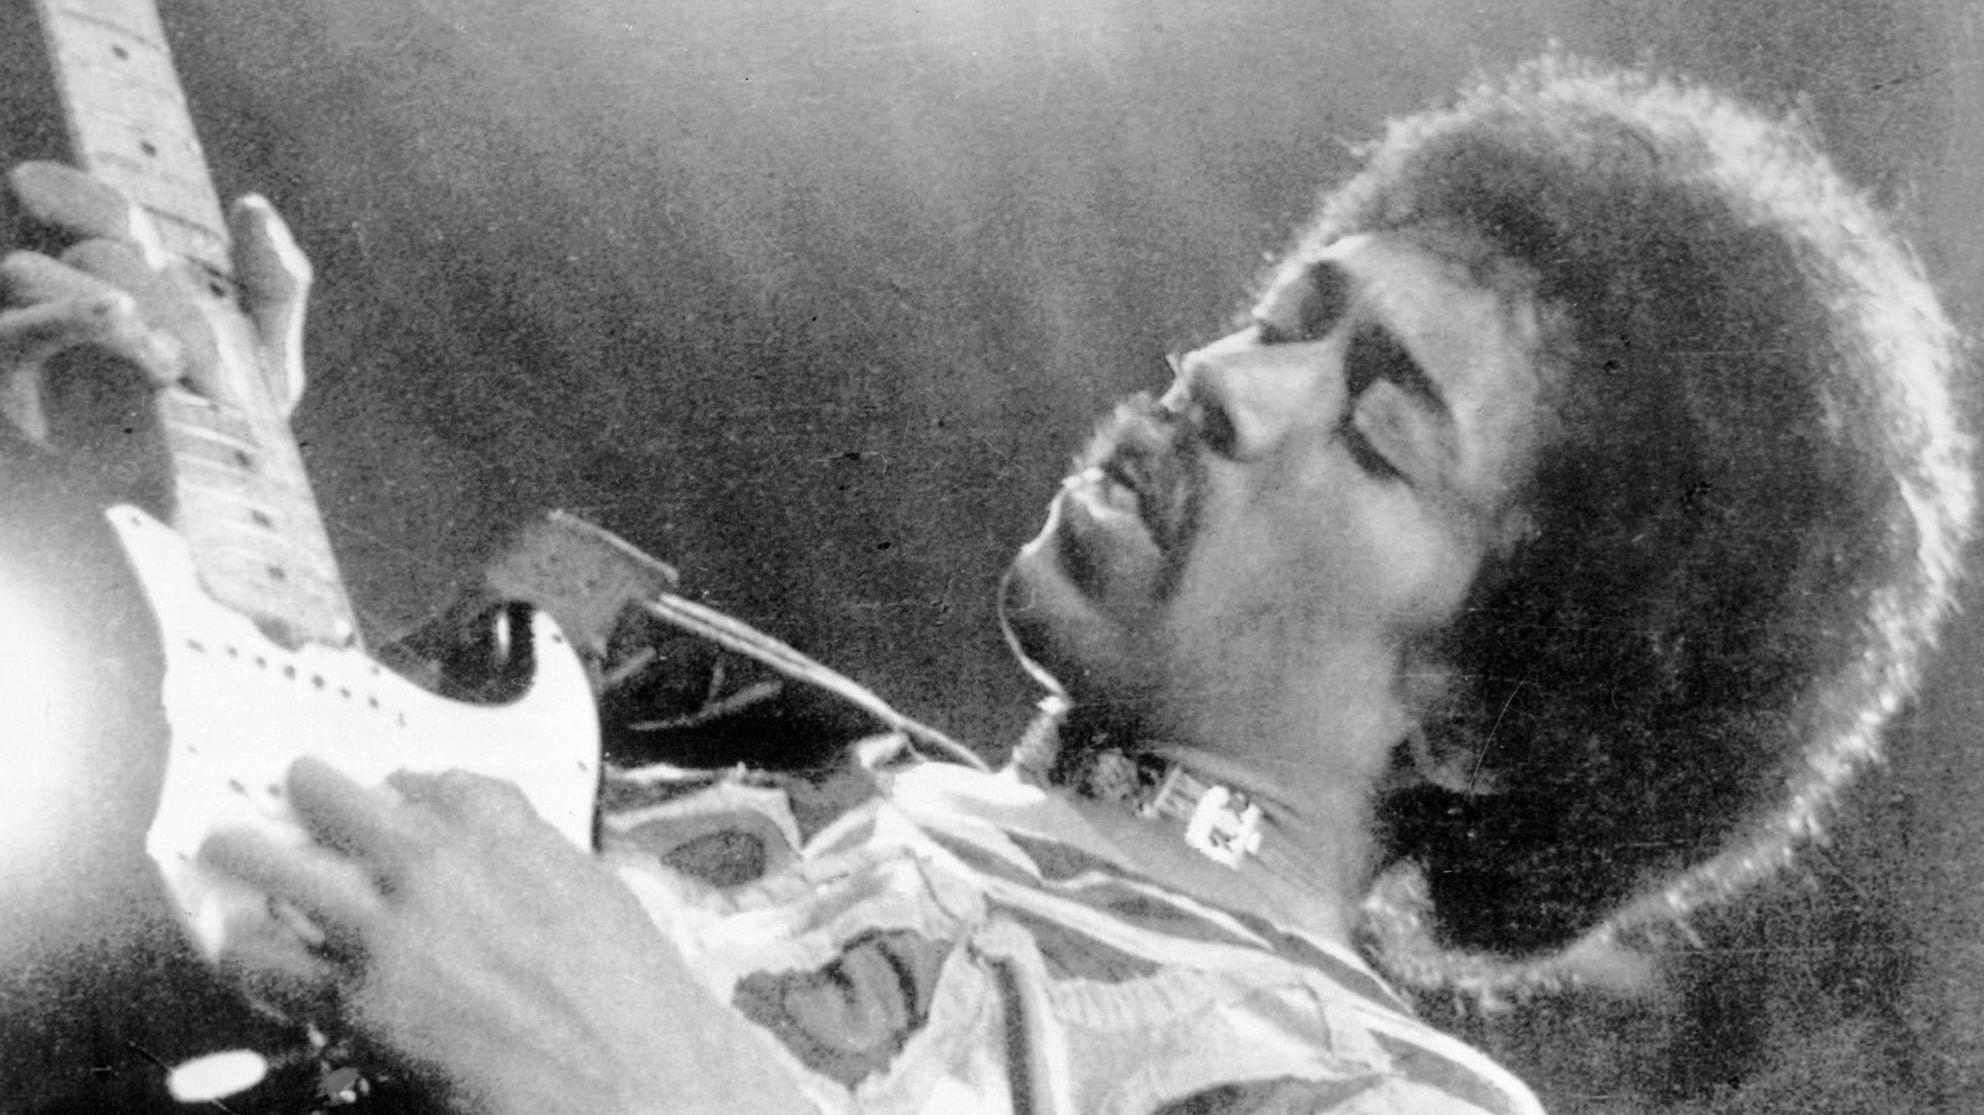 the musical successes and influence of jimi hendrix Jimi hendrix would have been 70 happy birthday jimi hendrix 4 ways the guitarist continues to influence hendrix's third most important musical.